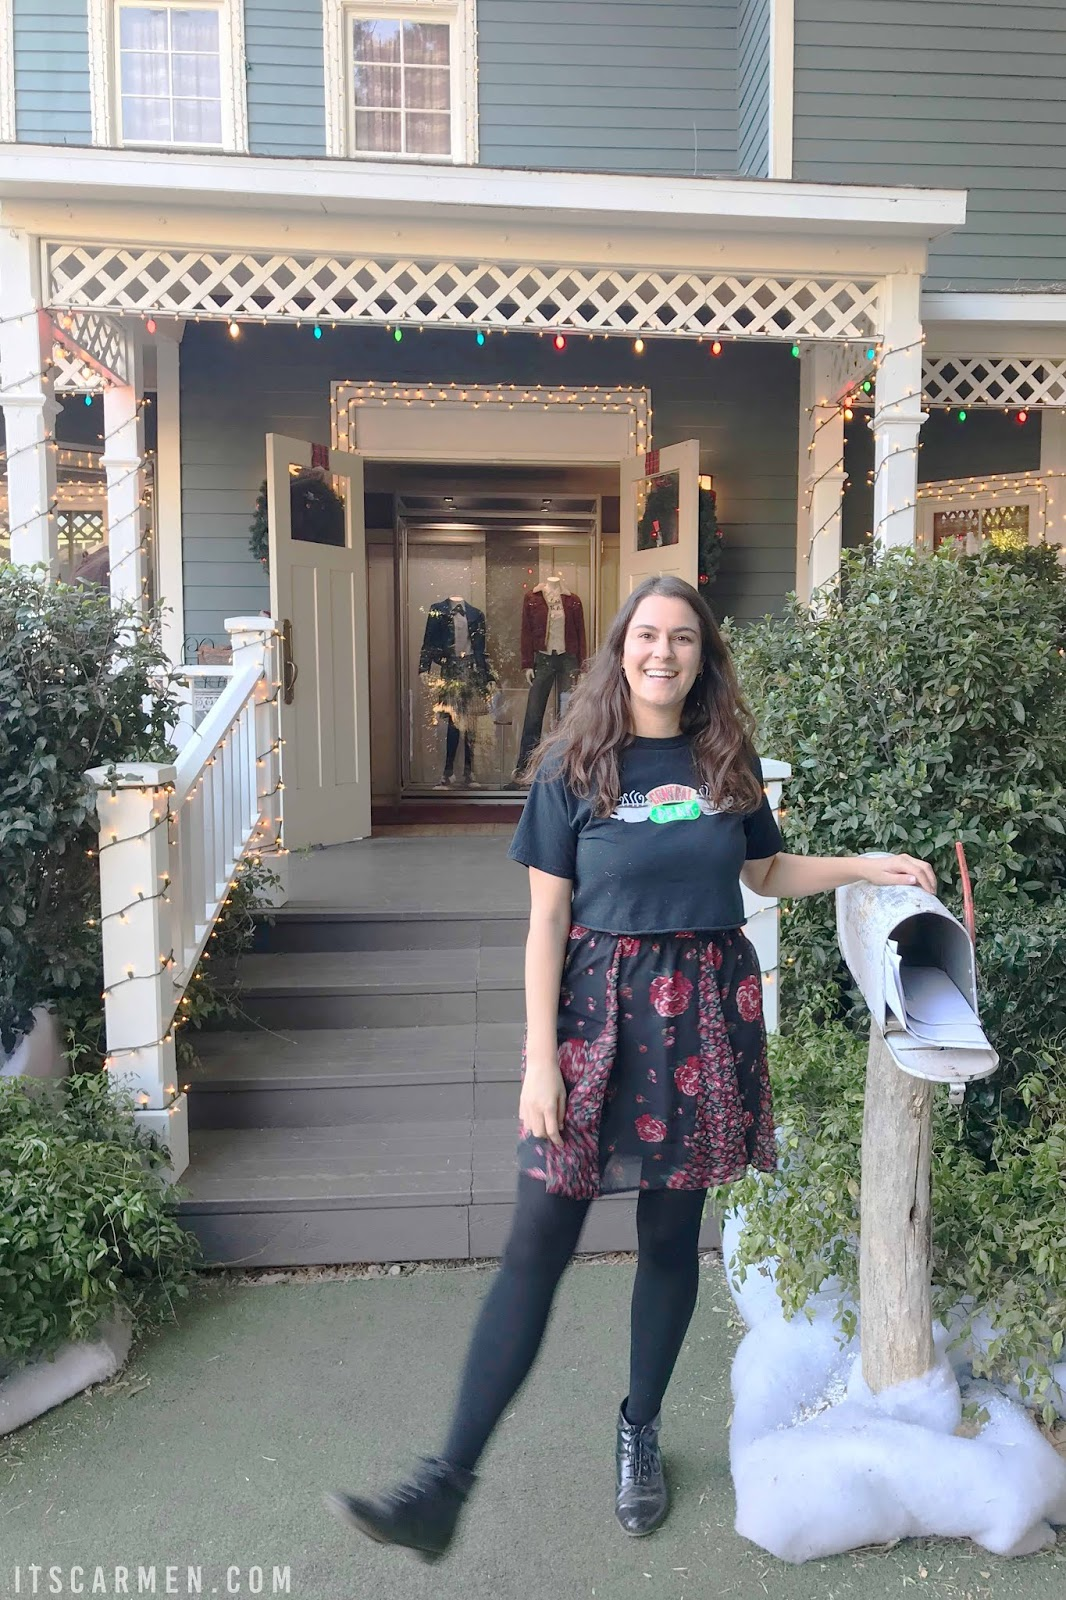 Warner Bros Hollywood Tour Lorelai Gilmore and Rory's house in Stars Hollow